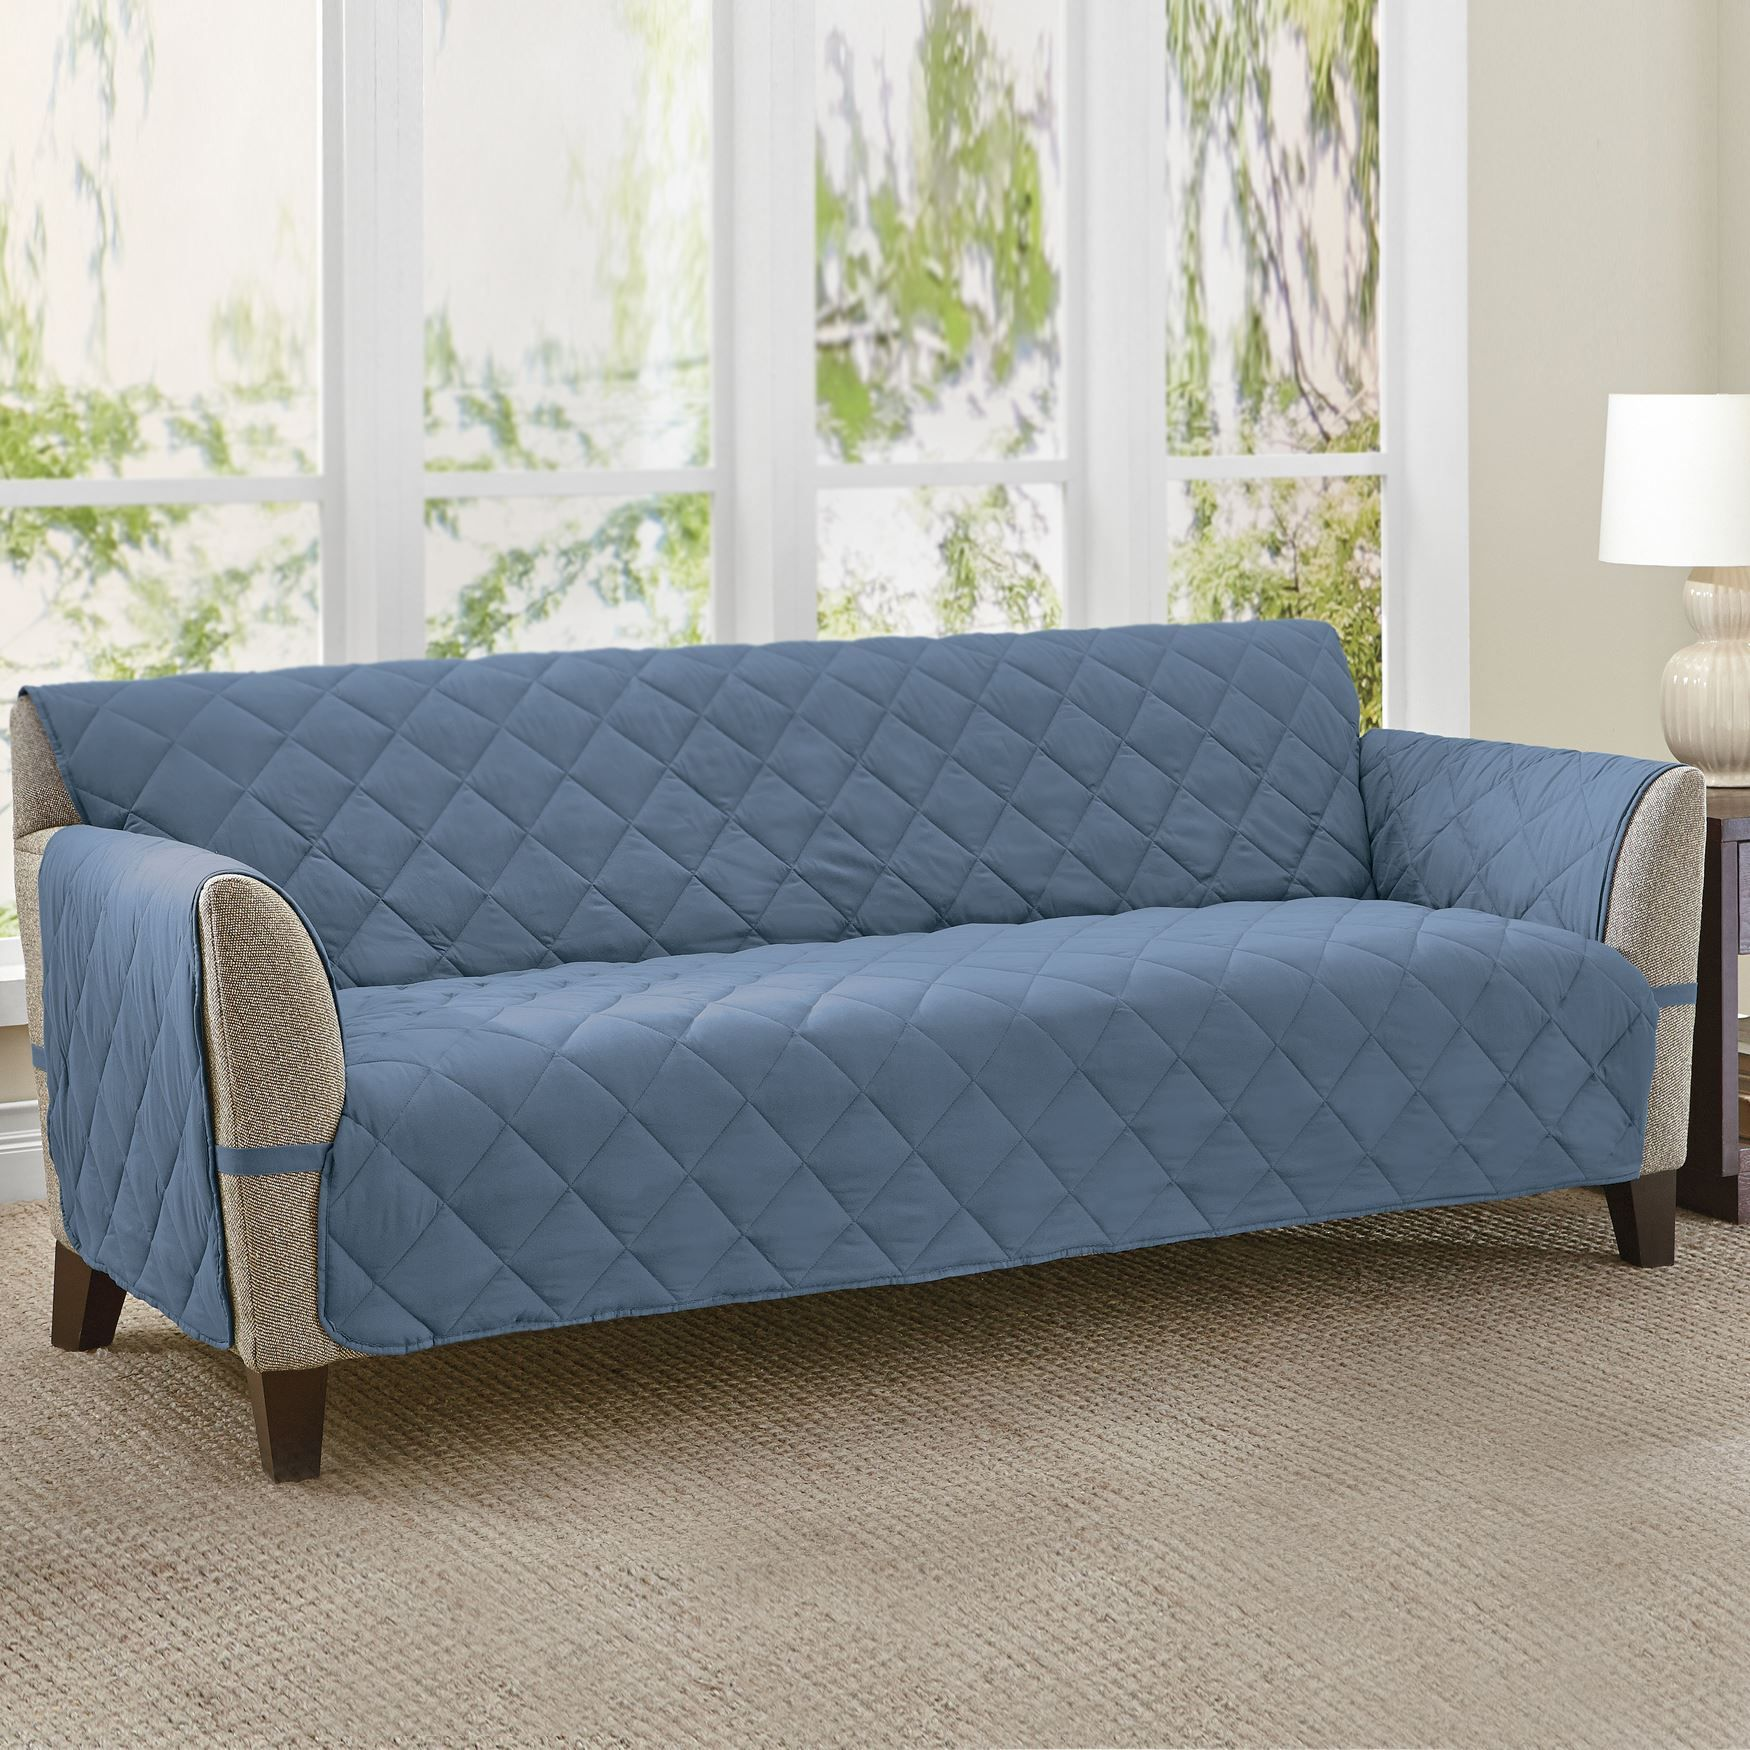 This Water Repellent Extra Long Sofa Cover In A Diamond